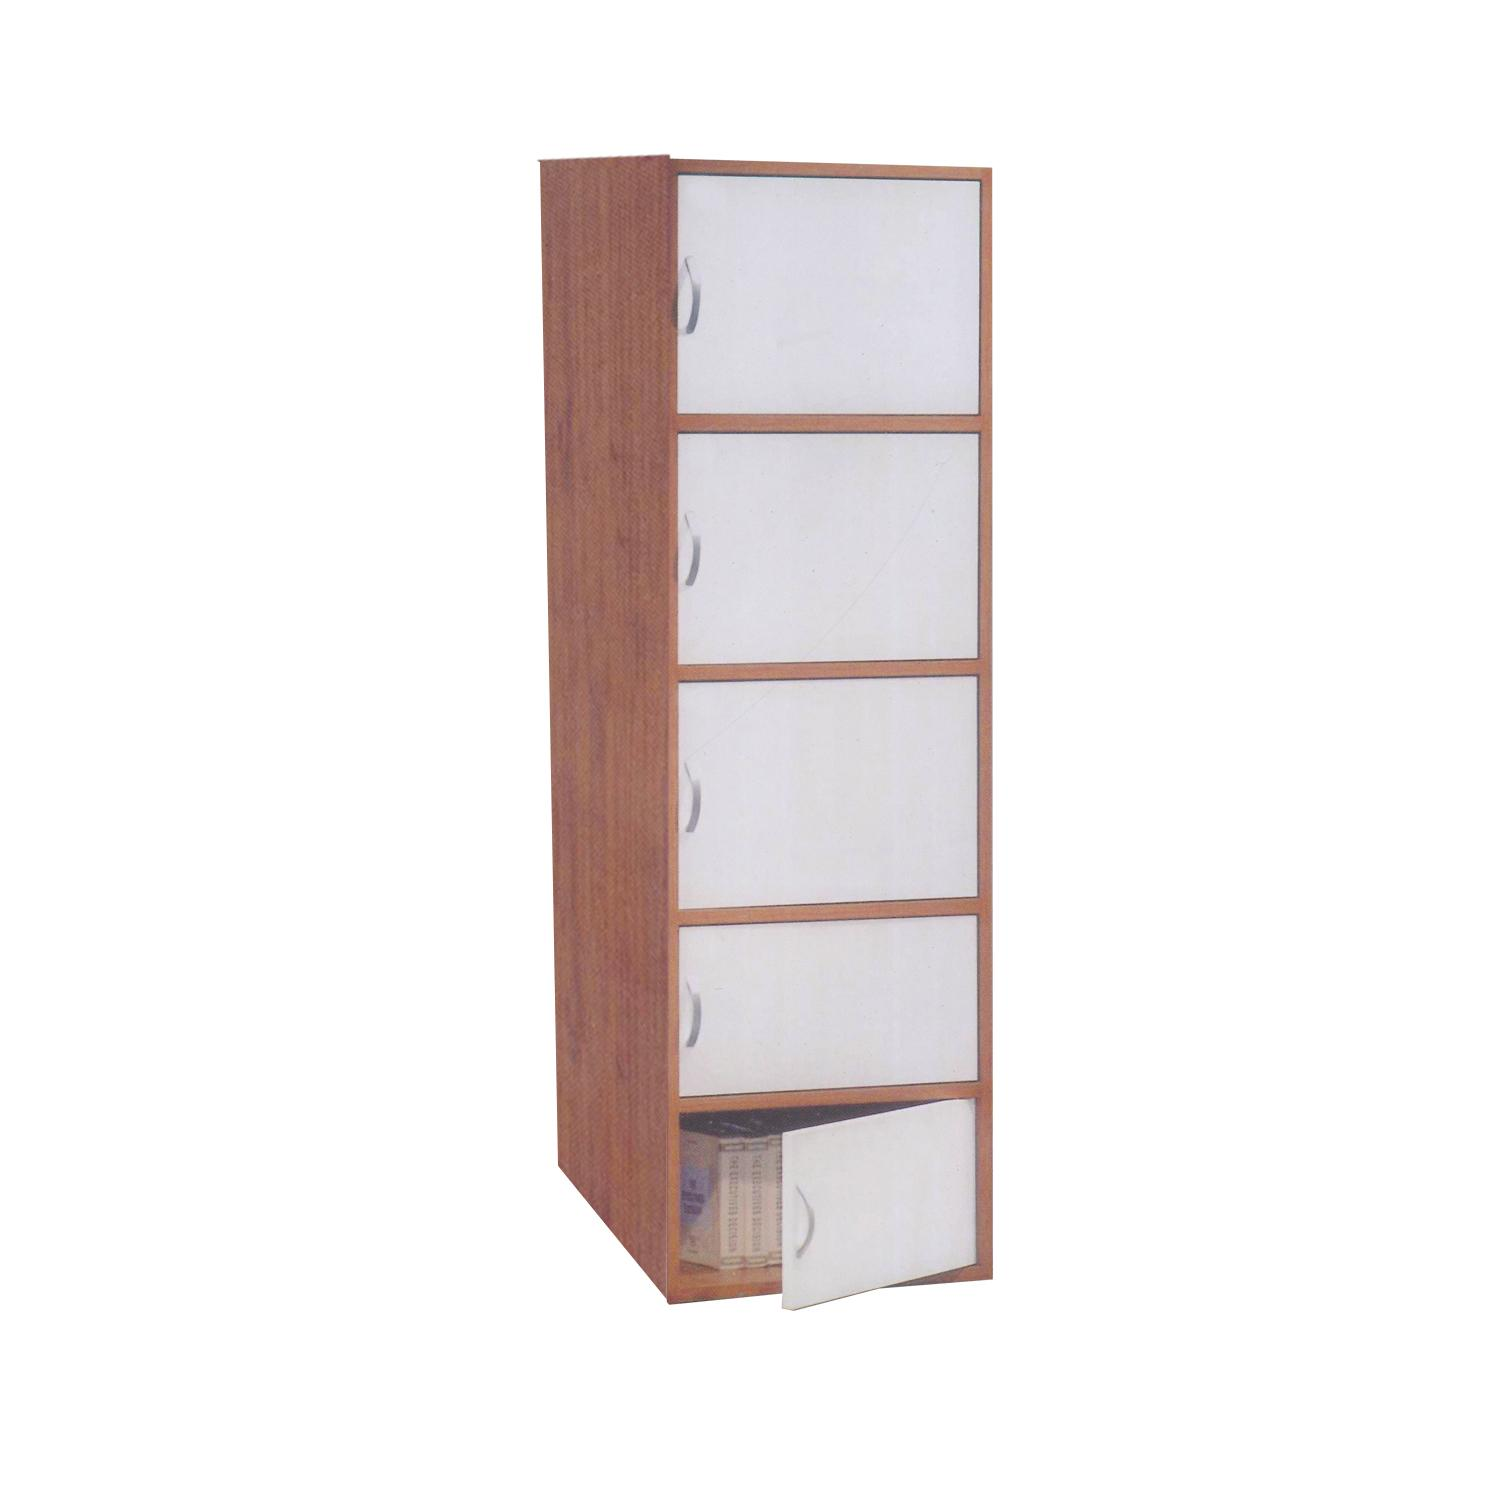 LIVING MALL_Ratika 3 Storage Cabinet_FREE DELIVERY